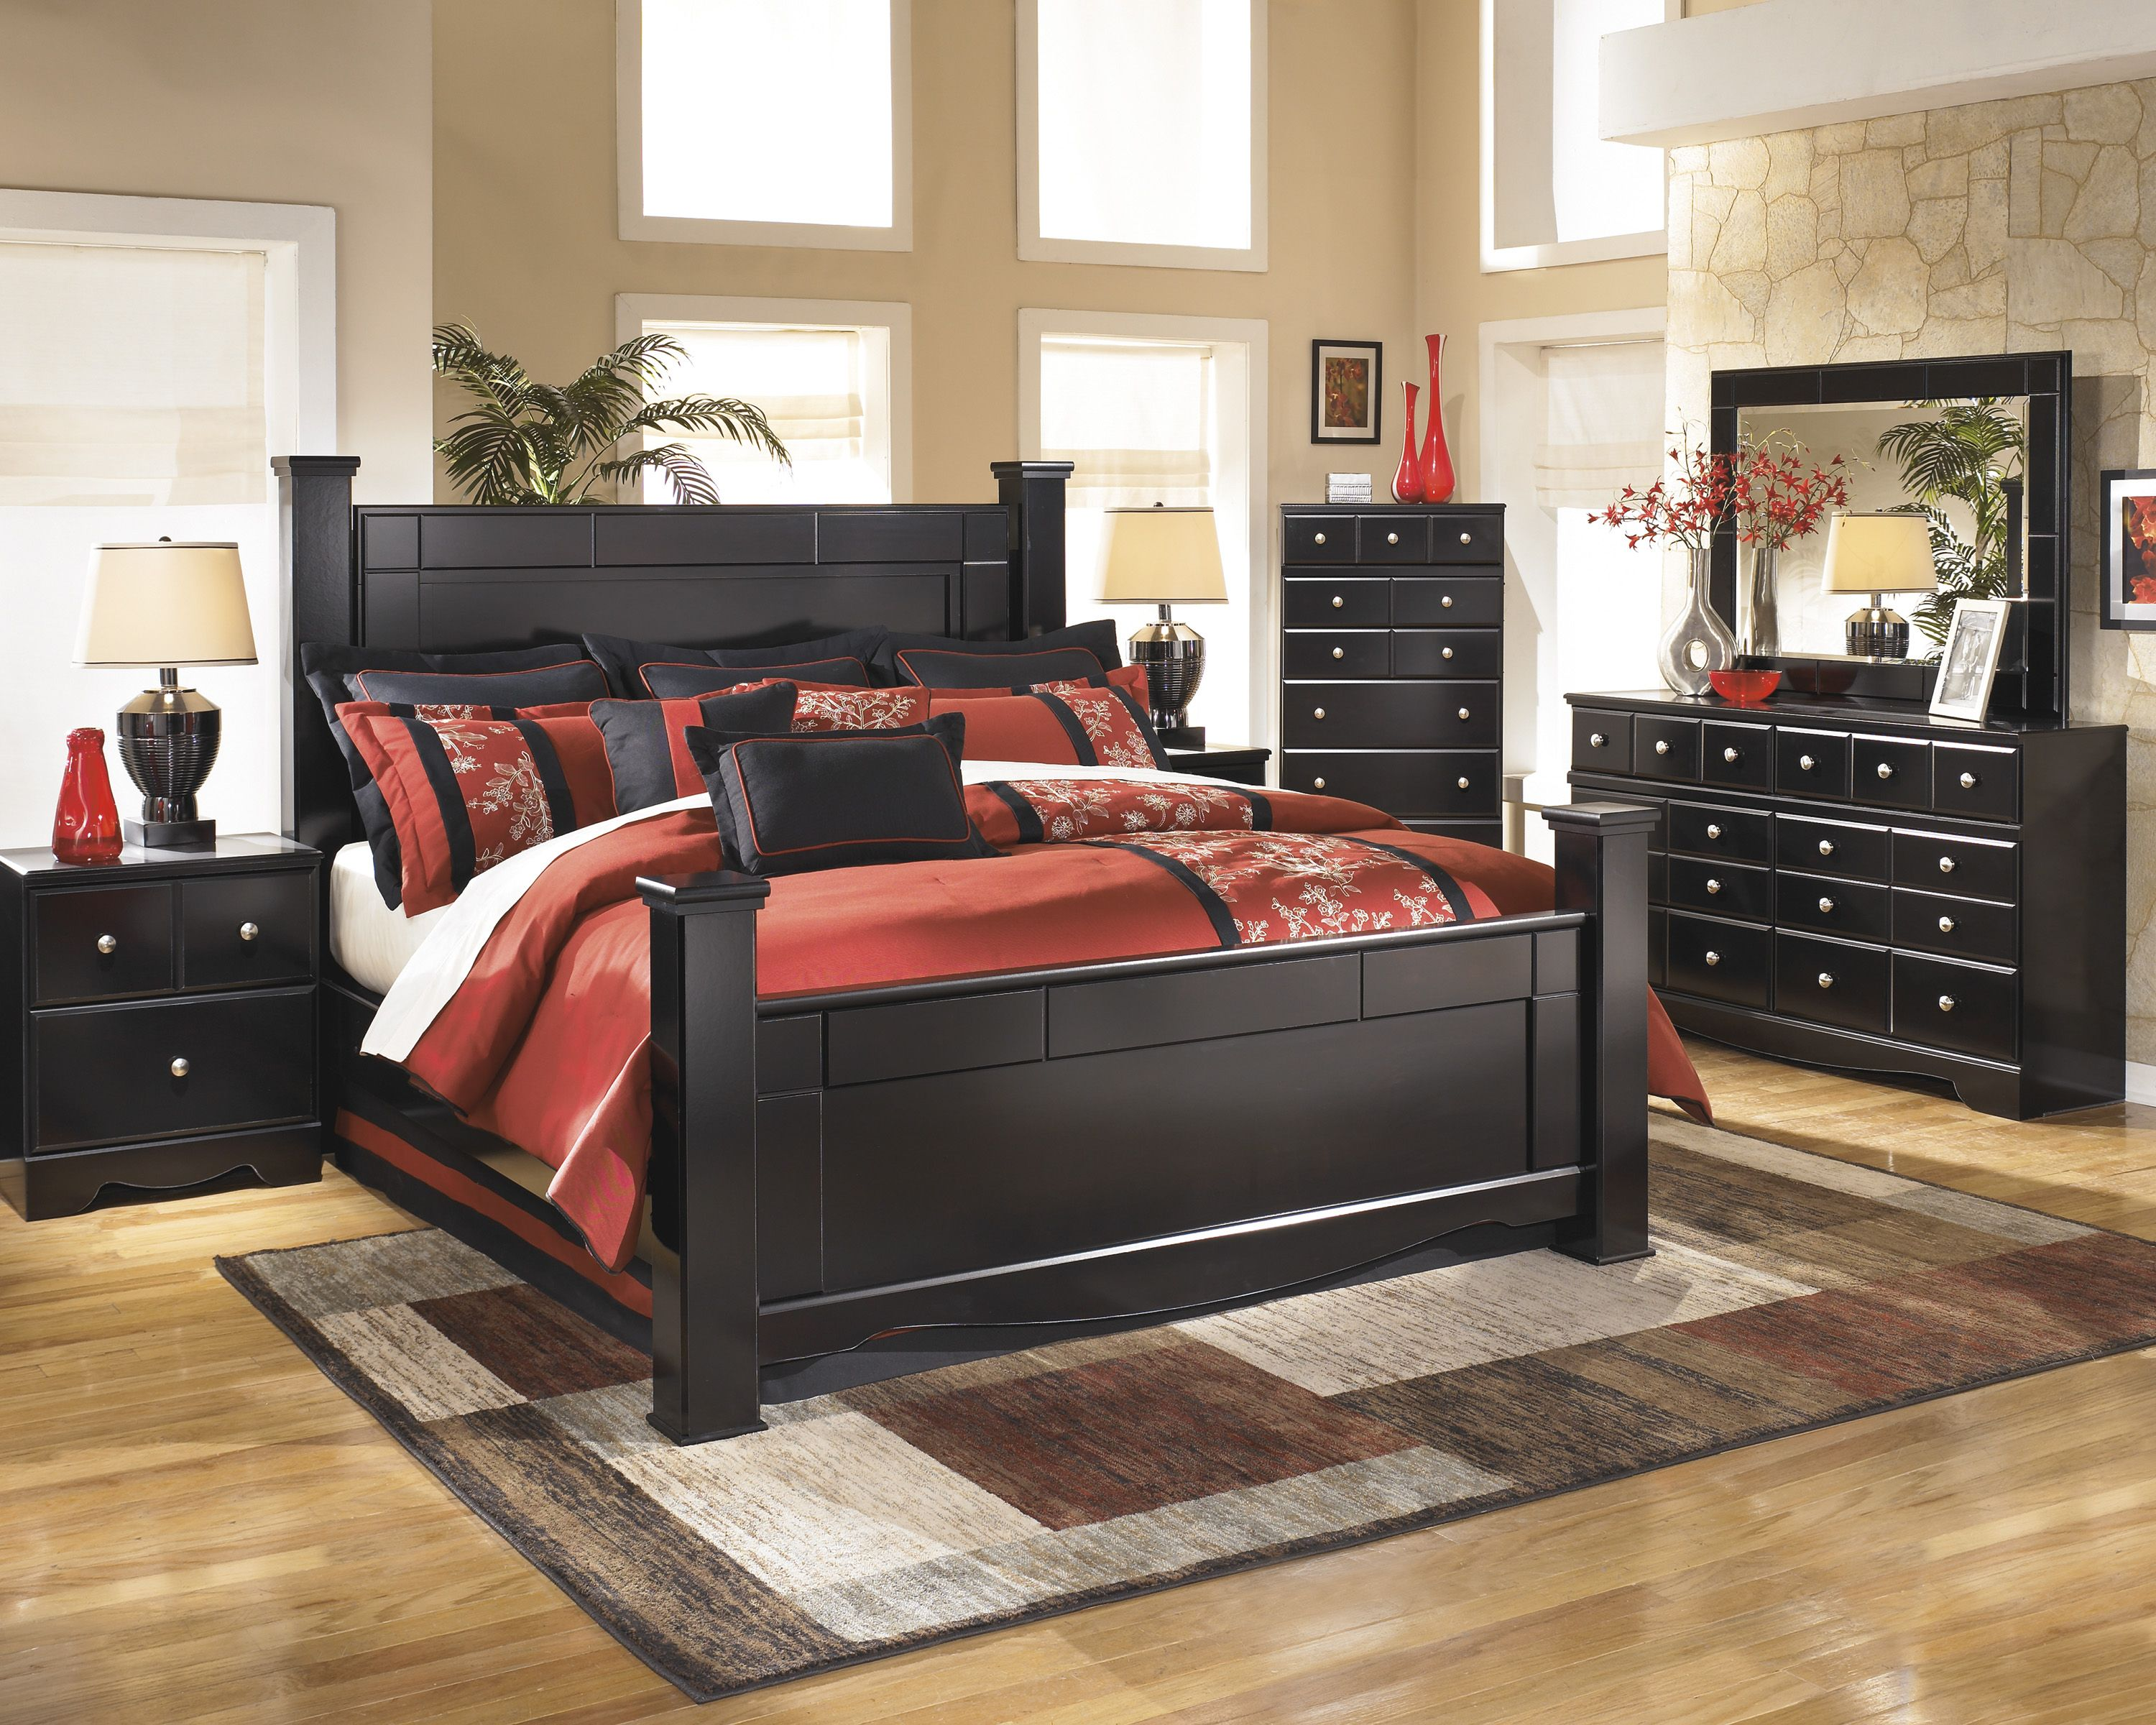 1000 Images About Bedroom Ideas On Pinterest Furniture